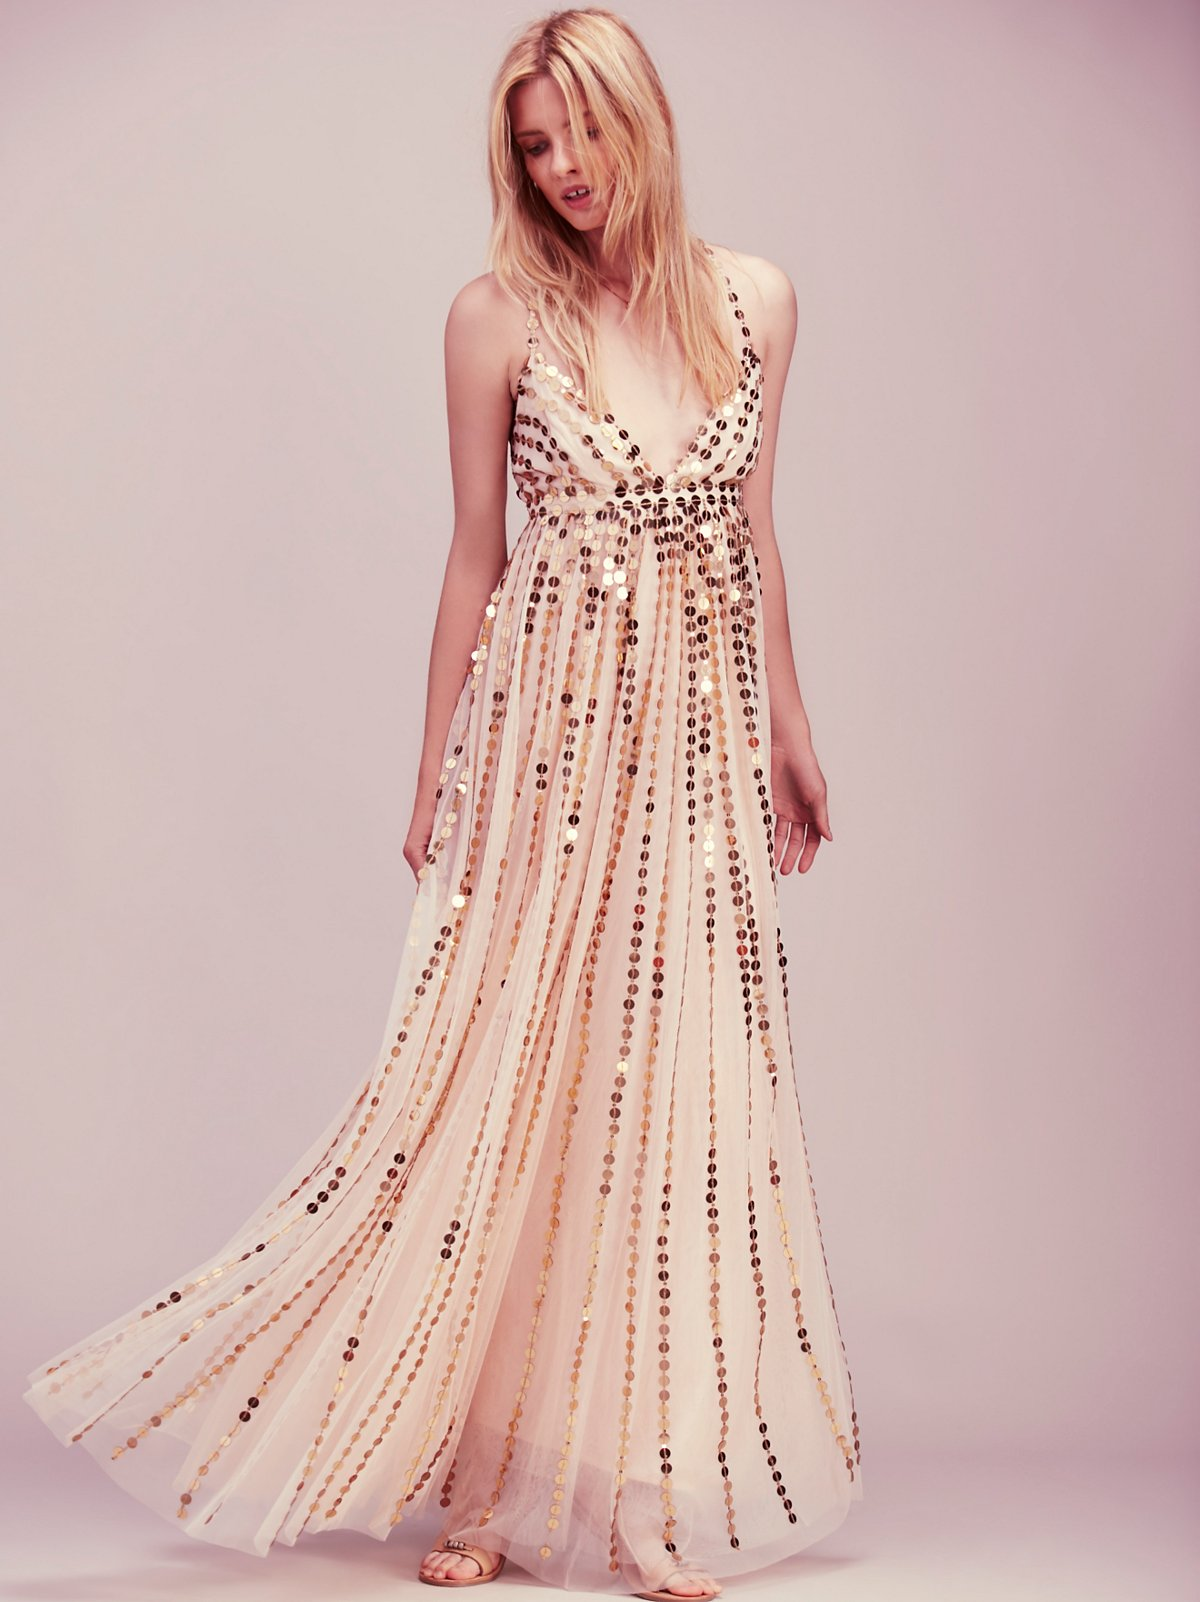 Only in my Dreams Maxi Dress